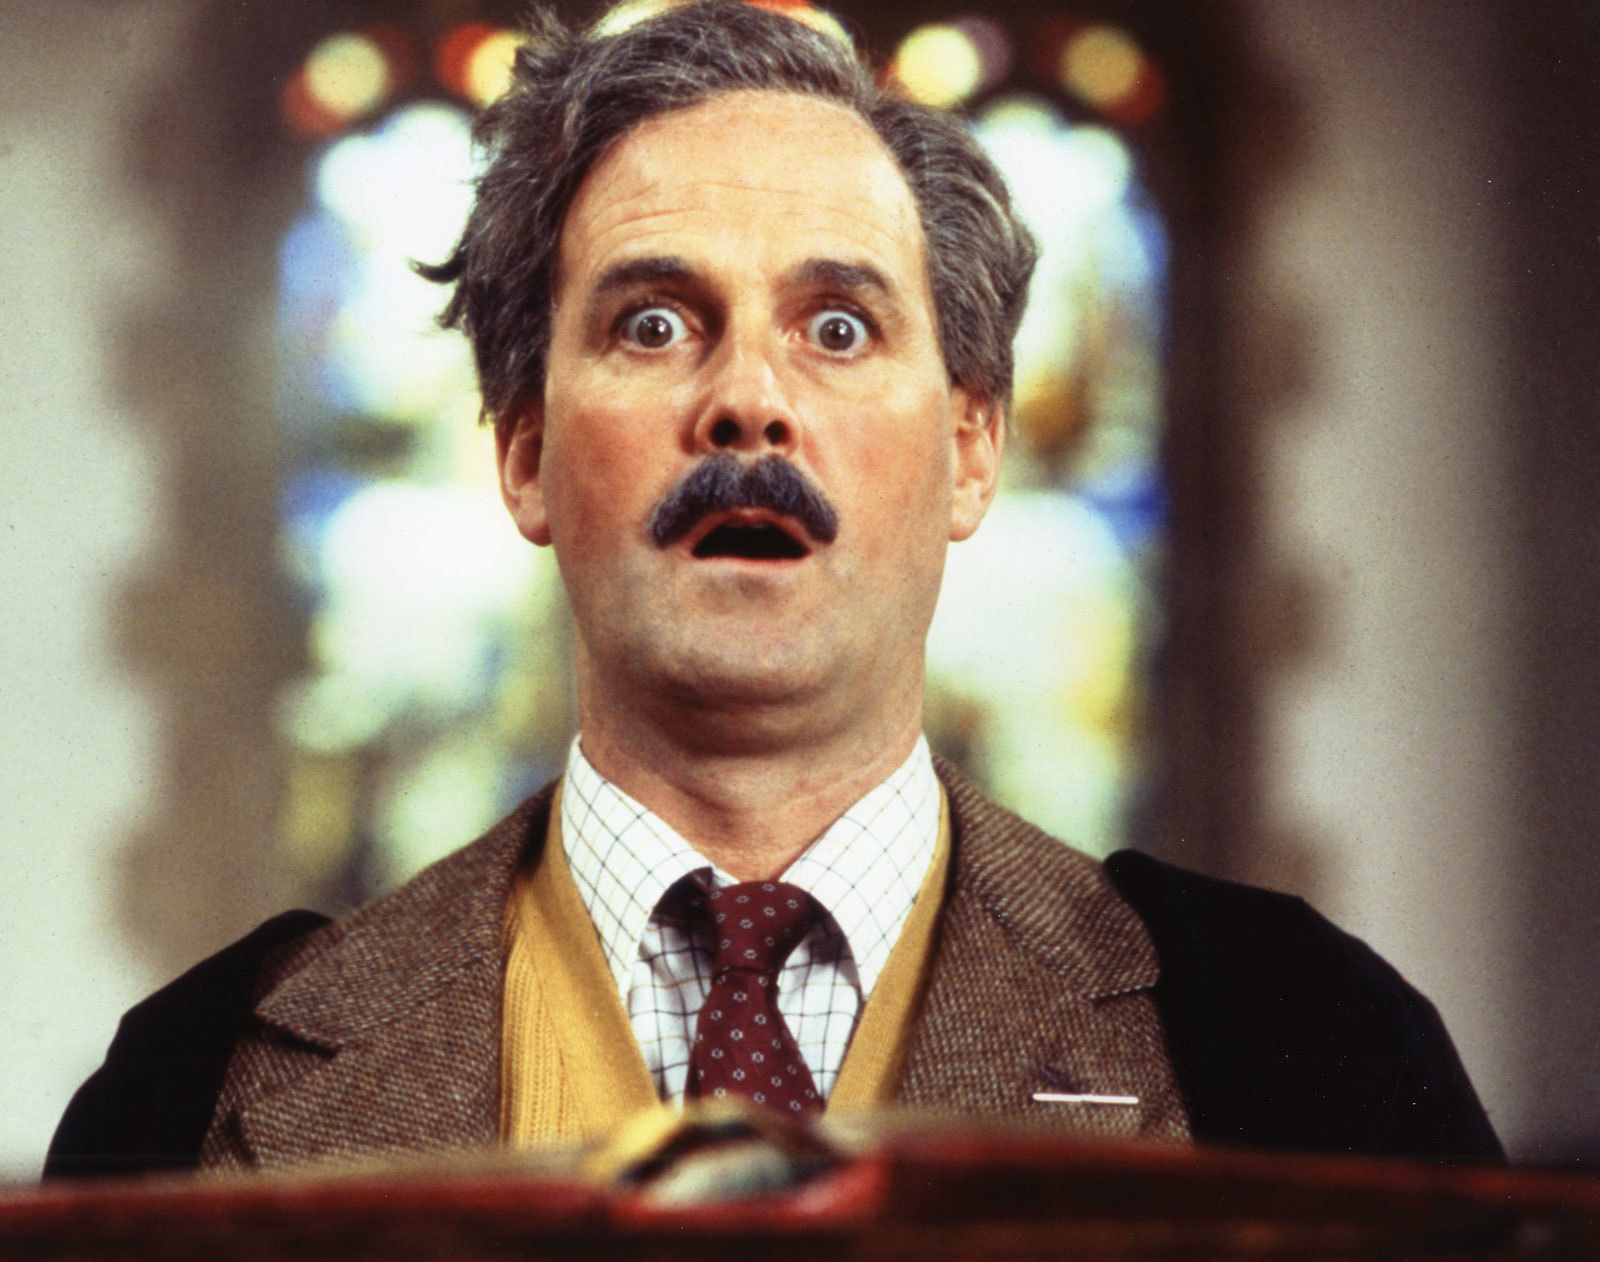 Monty Python John Cleese HD Wallpaper